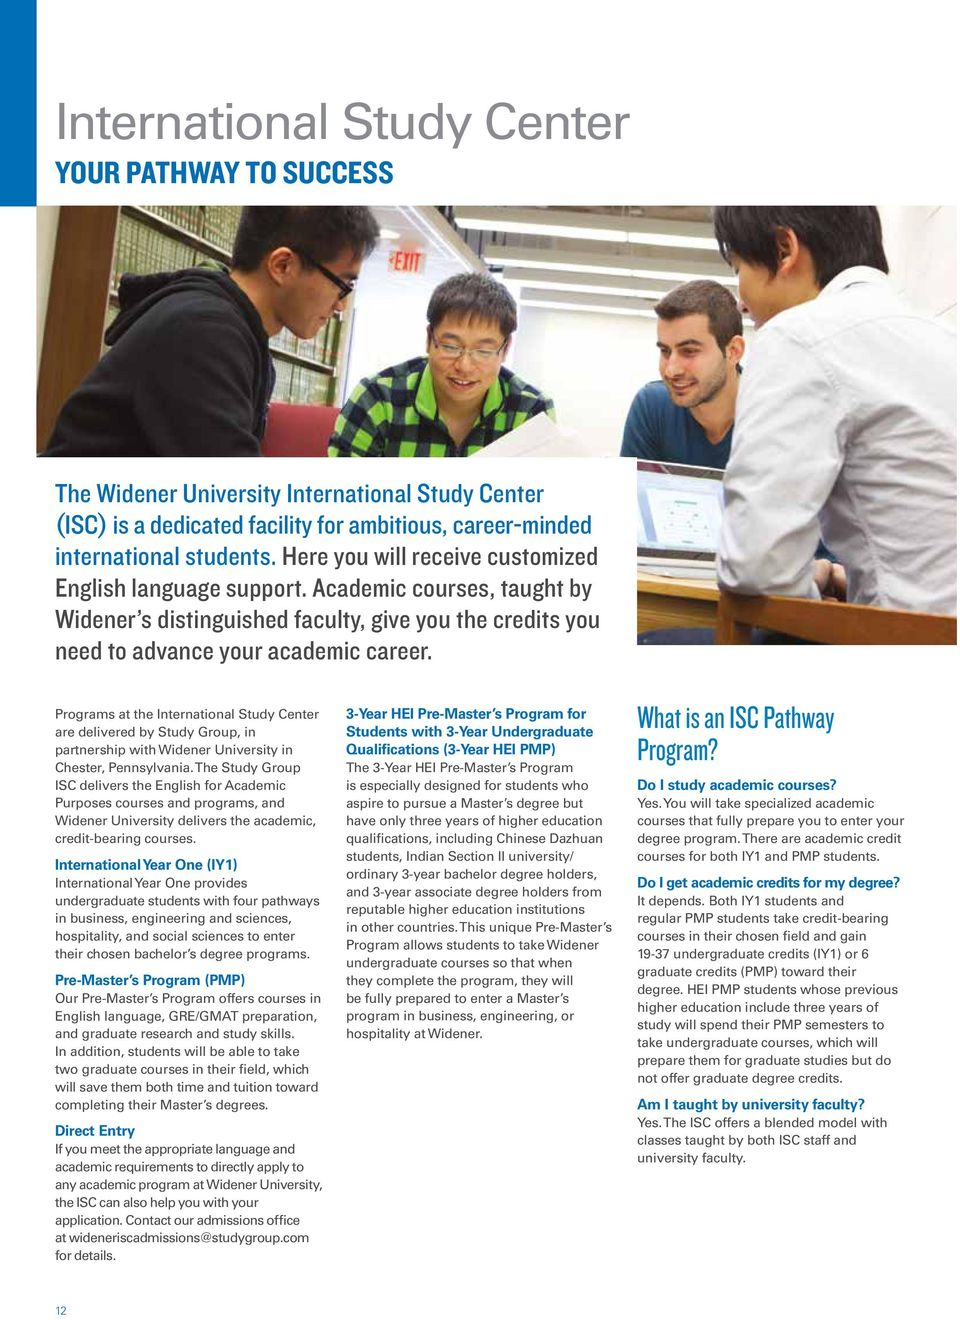 Programs at the International Study Center are delivered by Study Group, in partnership with Widener University in Chester, Pennsylvania.